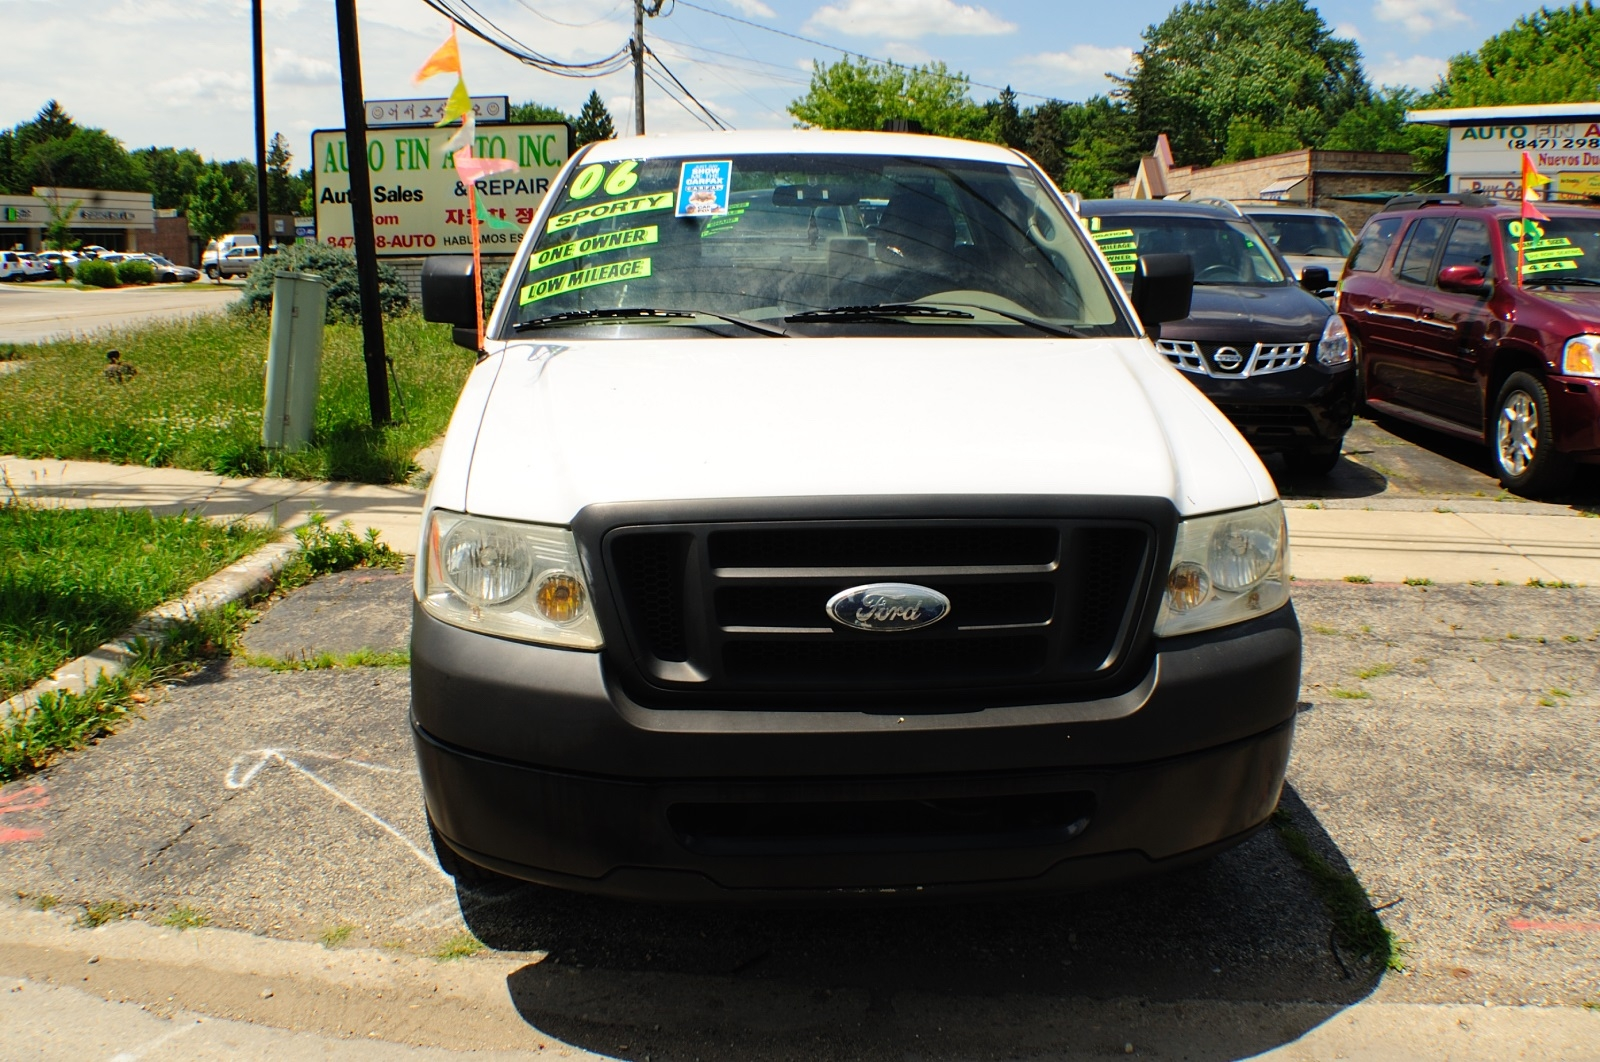 2006 Ford F150 White Ext Cab 4x2 Used Pickup Truck Sale Buffalo Grove Bollingbrook Carol Stream Illinois